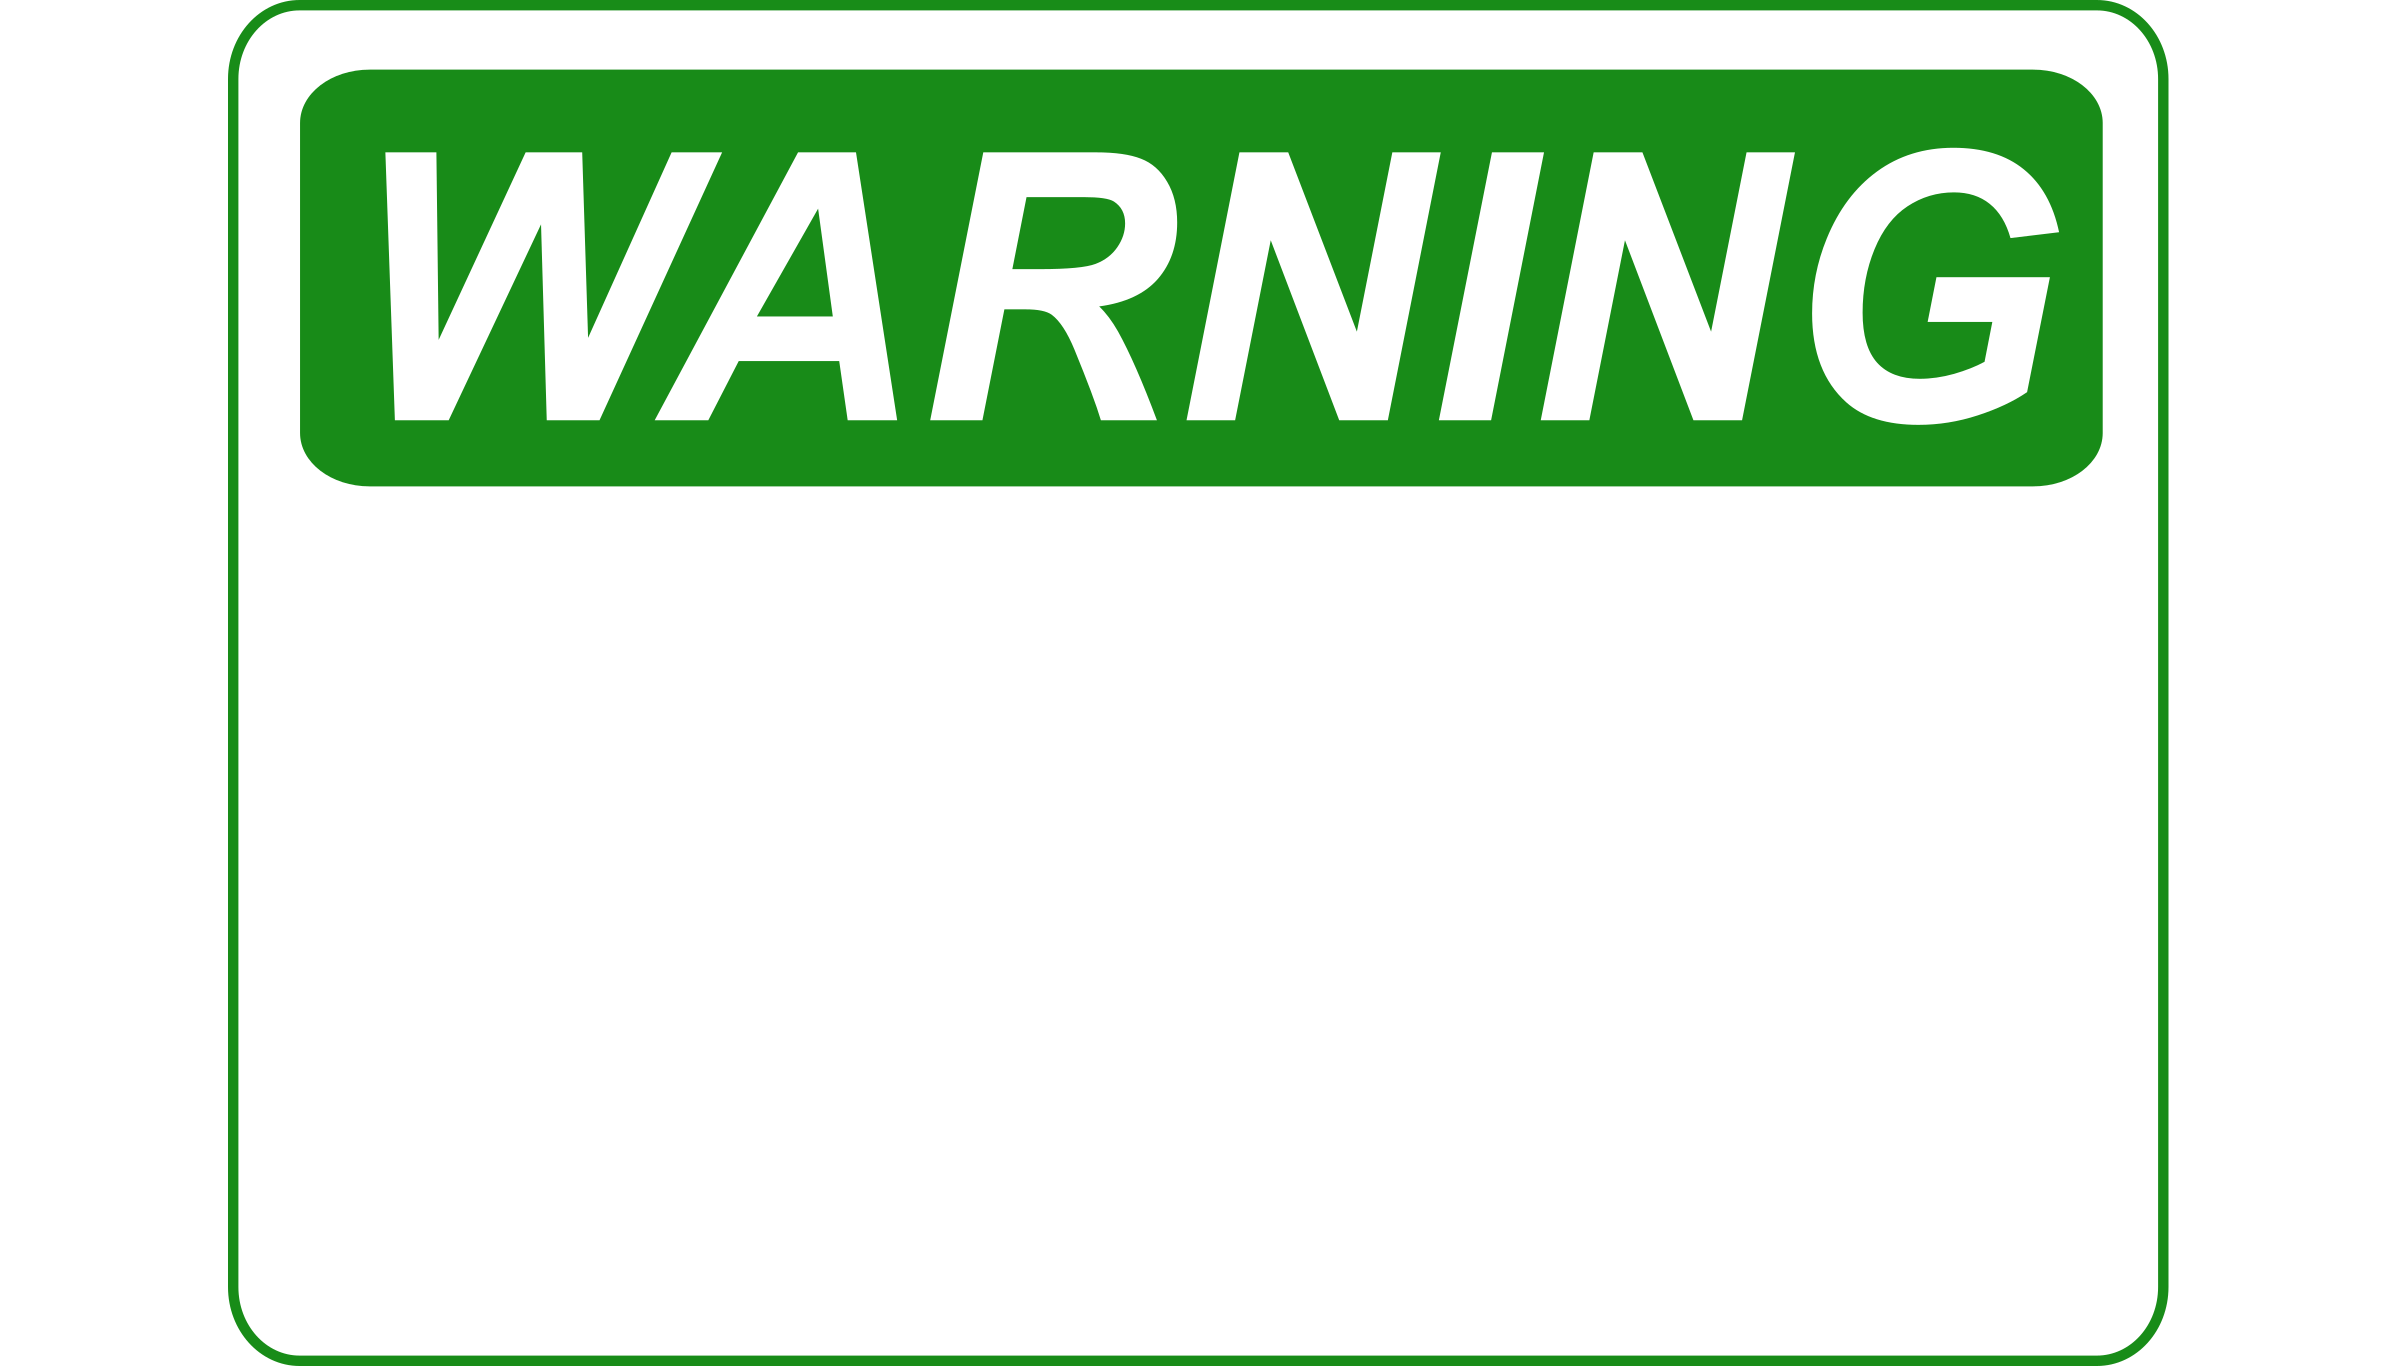 Danger clipart blank yield sign. Caution template datariouruguay